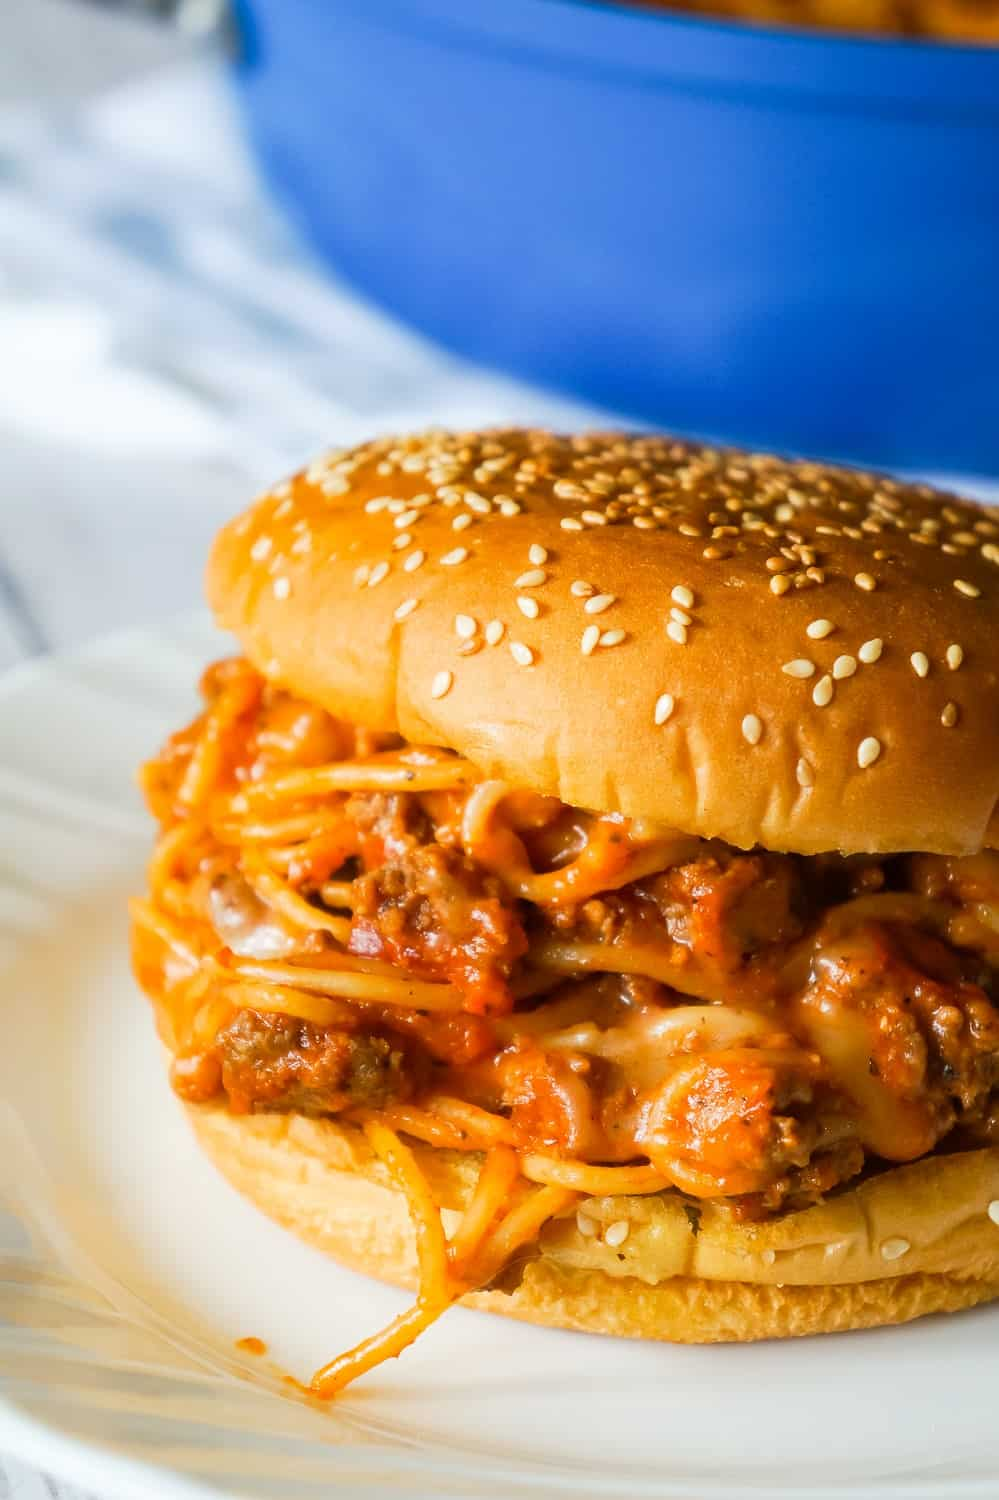 Cheesy Spaghetti Sloppy Joes are an easy ground beef dinner recipe loaded with spaghetti, marinara sauce and mozzarella cheese.